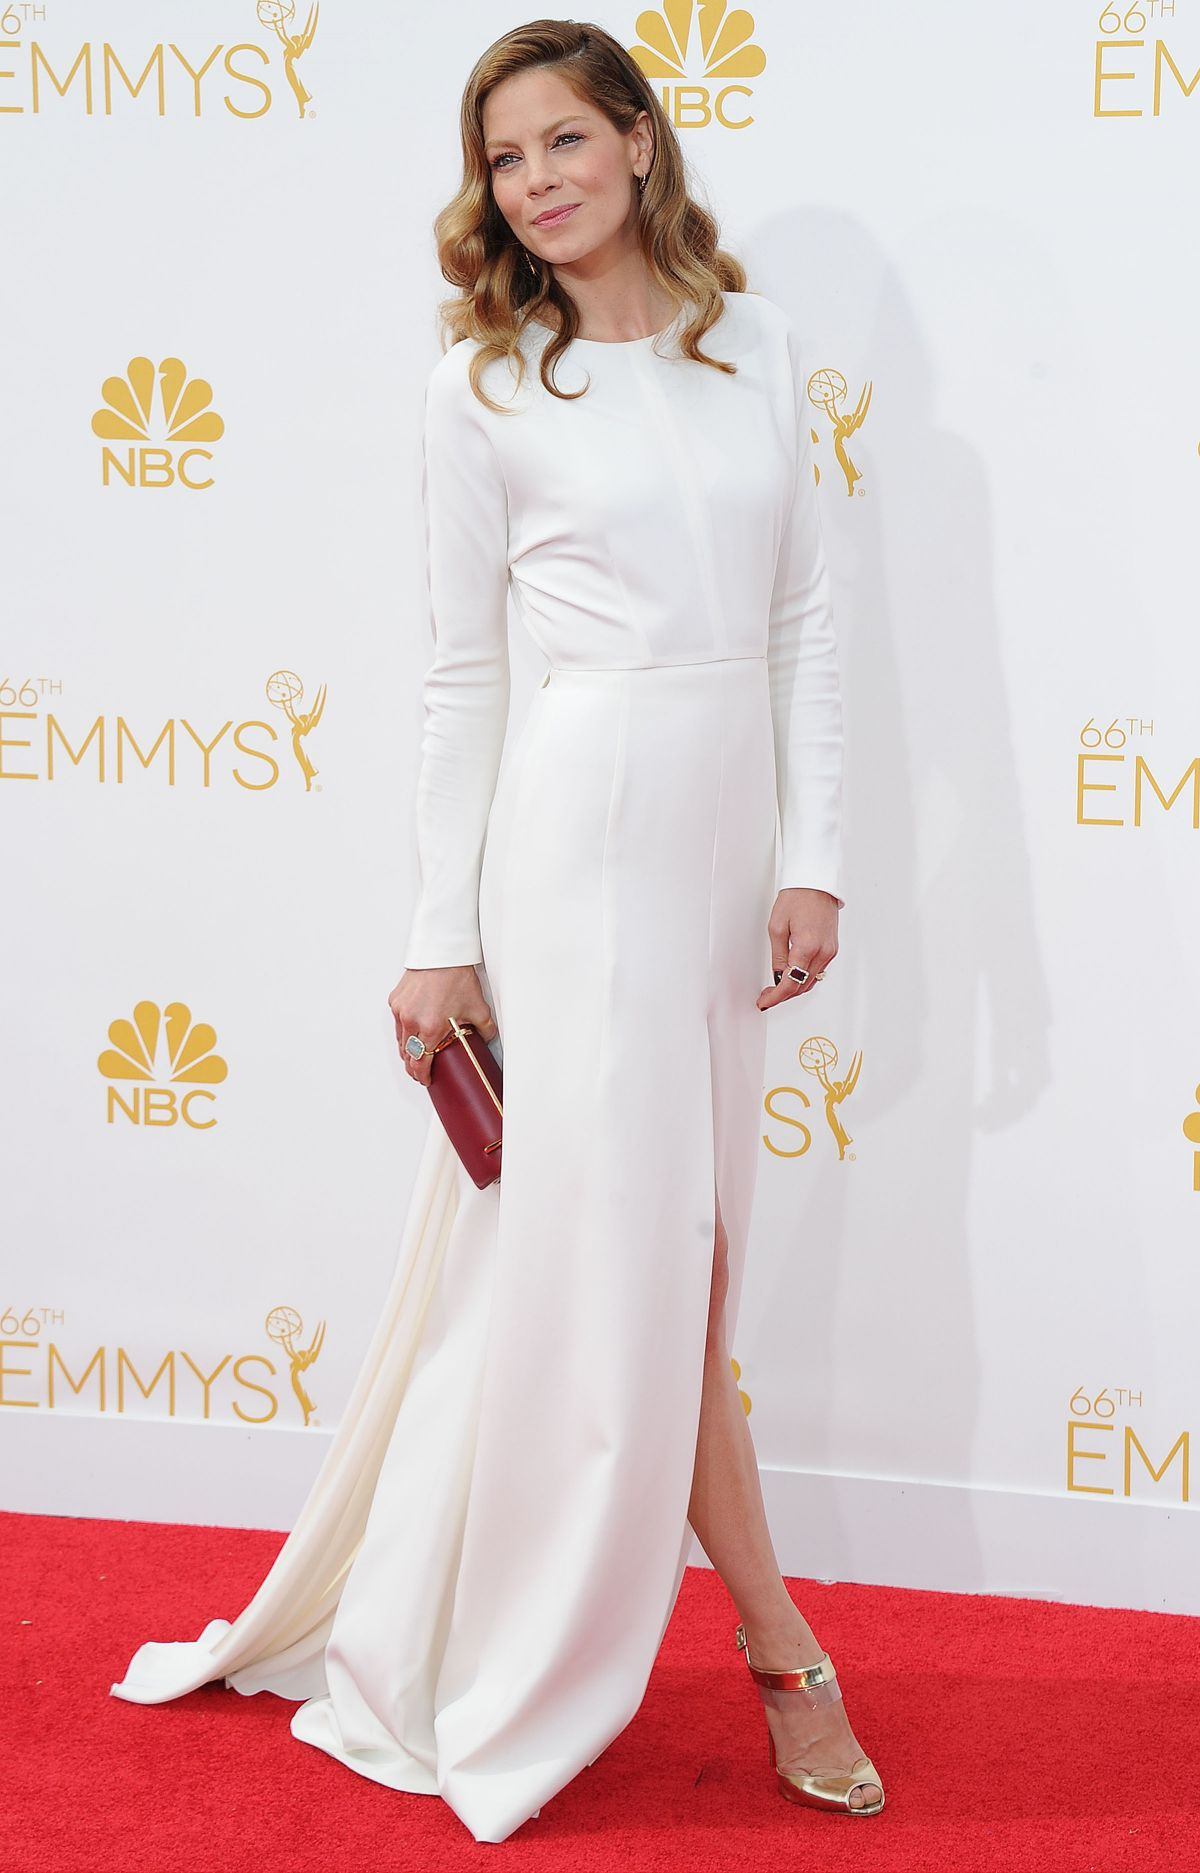 MICHELLE MONAGHAN at 2014 Emmy Awards